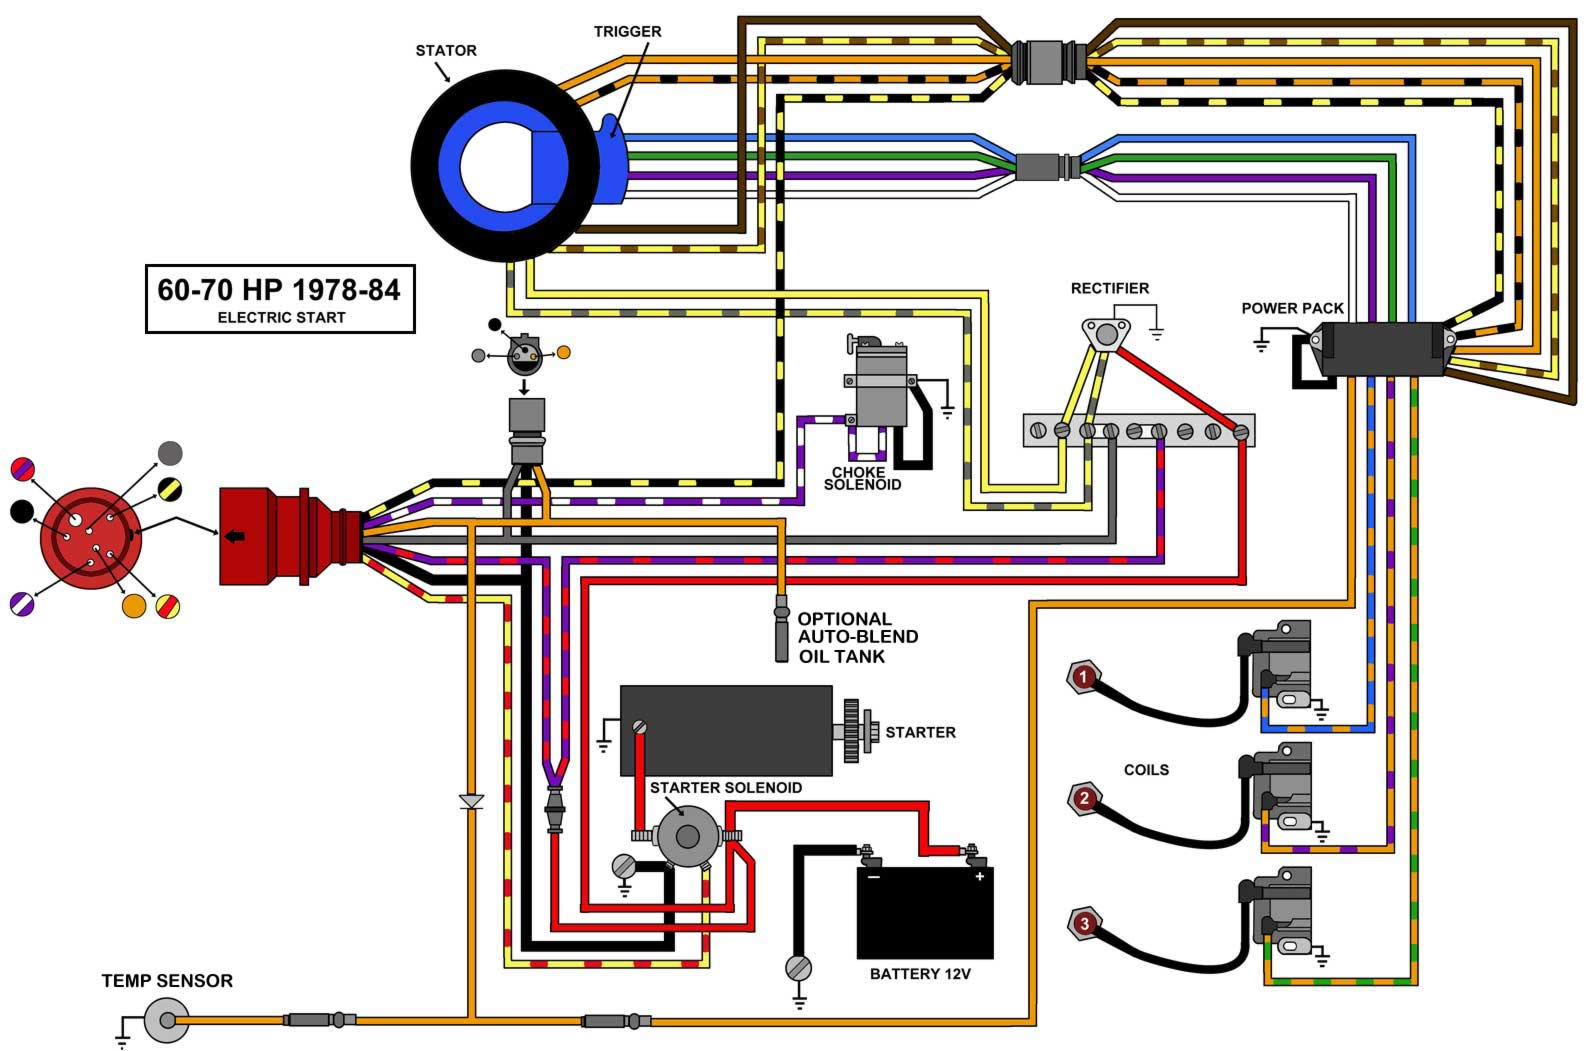 78 84_3 CYL_EL wiring tach from johnson controls page 1 iboats boating forums evinrude vro wiring diagram at gsmportal.co